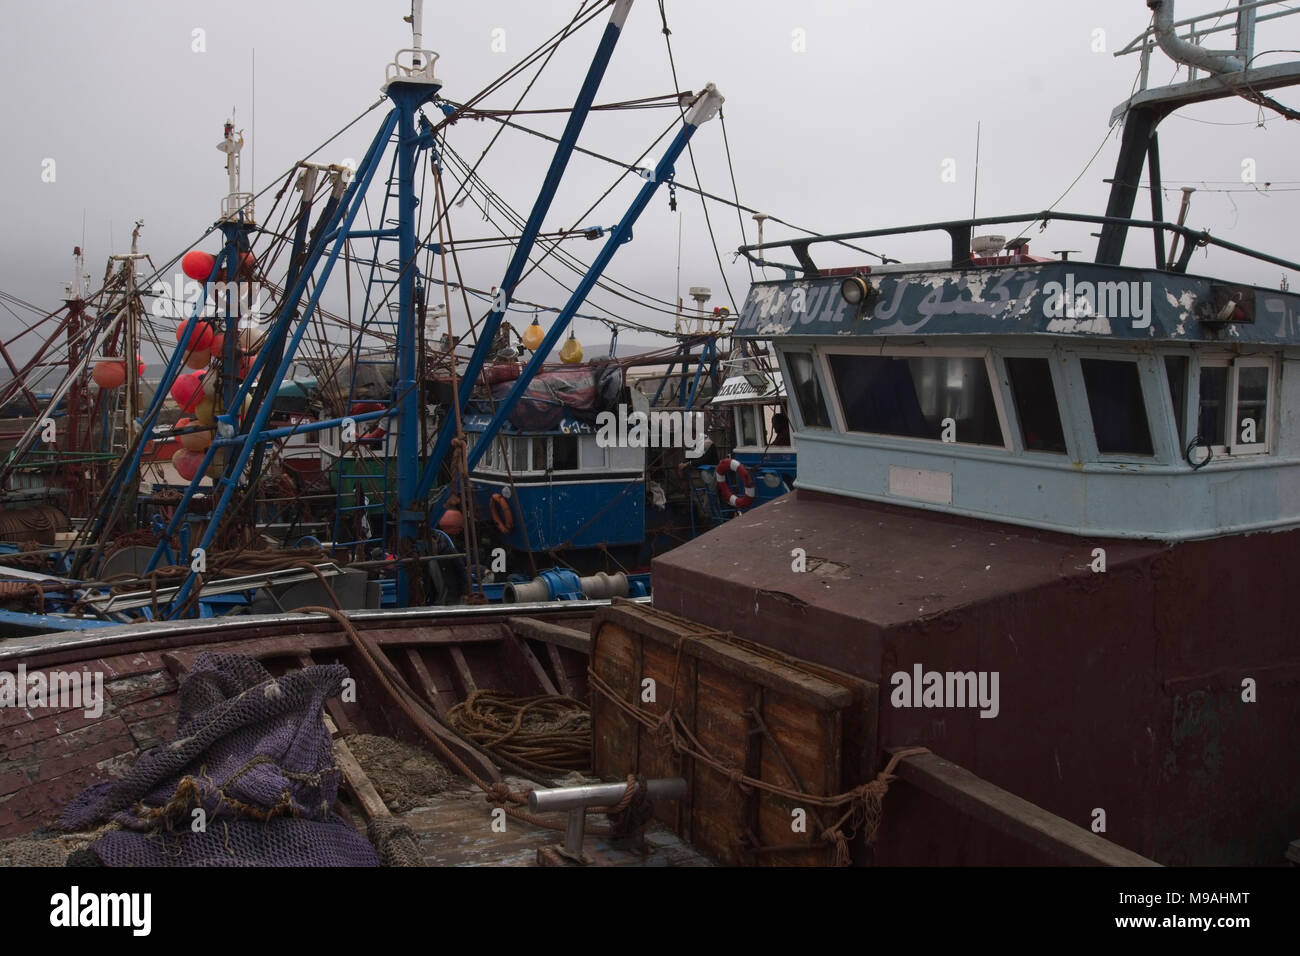 Cluster of fishing vessels moored together. - Stock Image